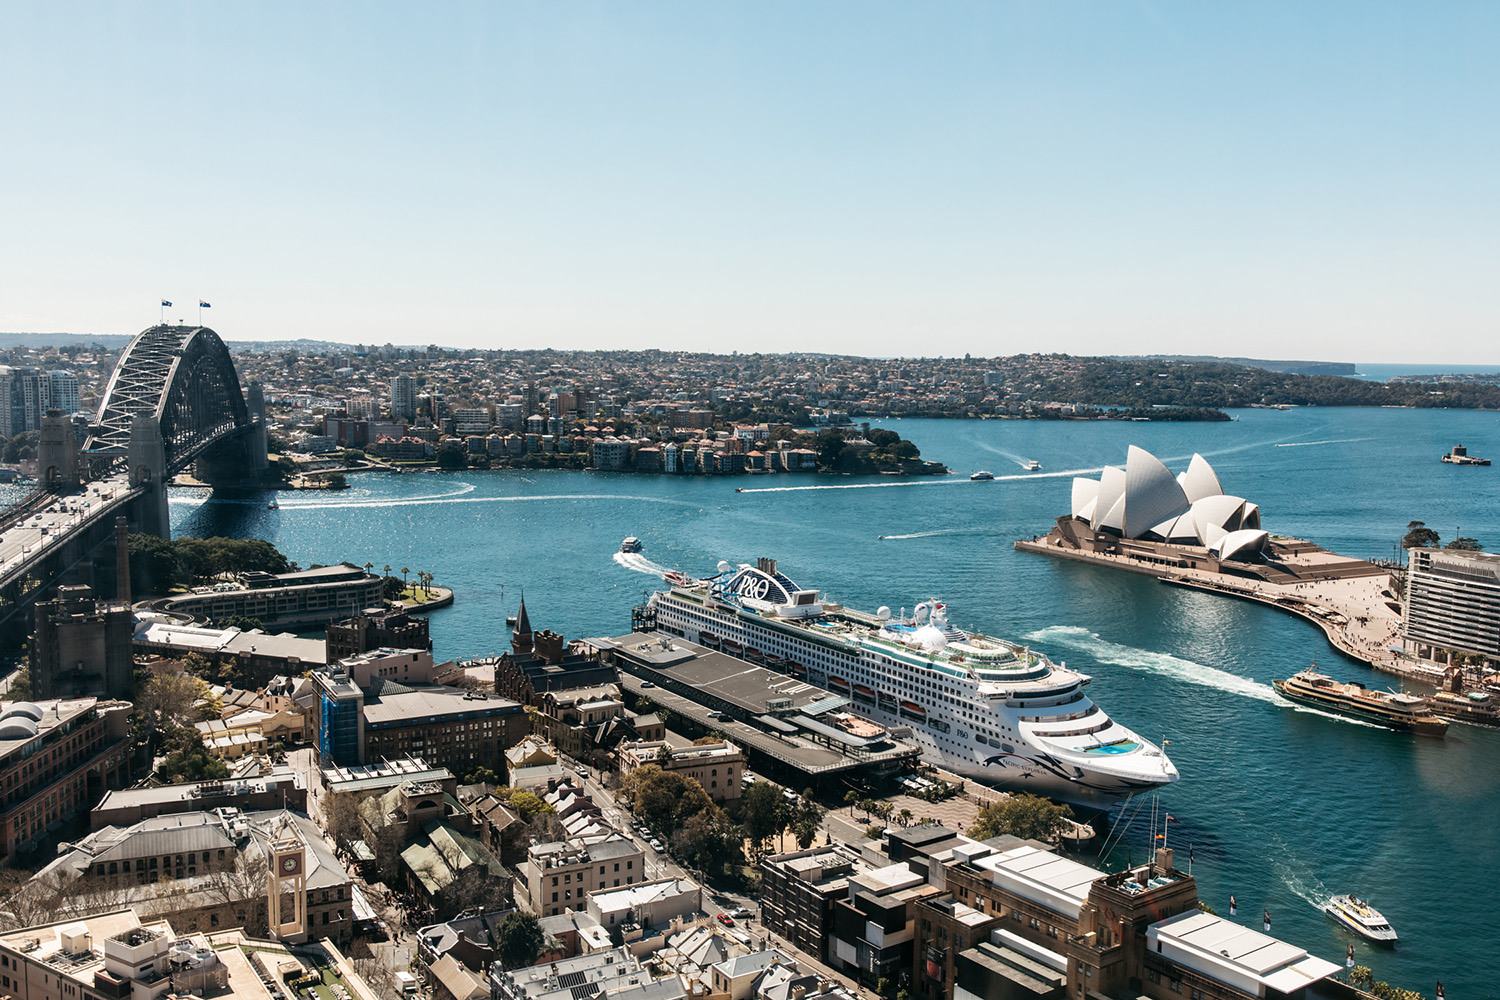 The panoramic views of Sydney Opera House and Sydney Harbour Bridge enhance the luxurious glamour of Sydney's destination hotel.